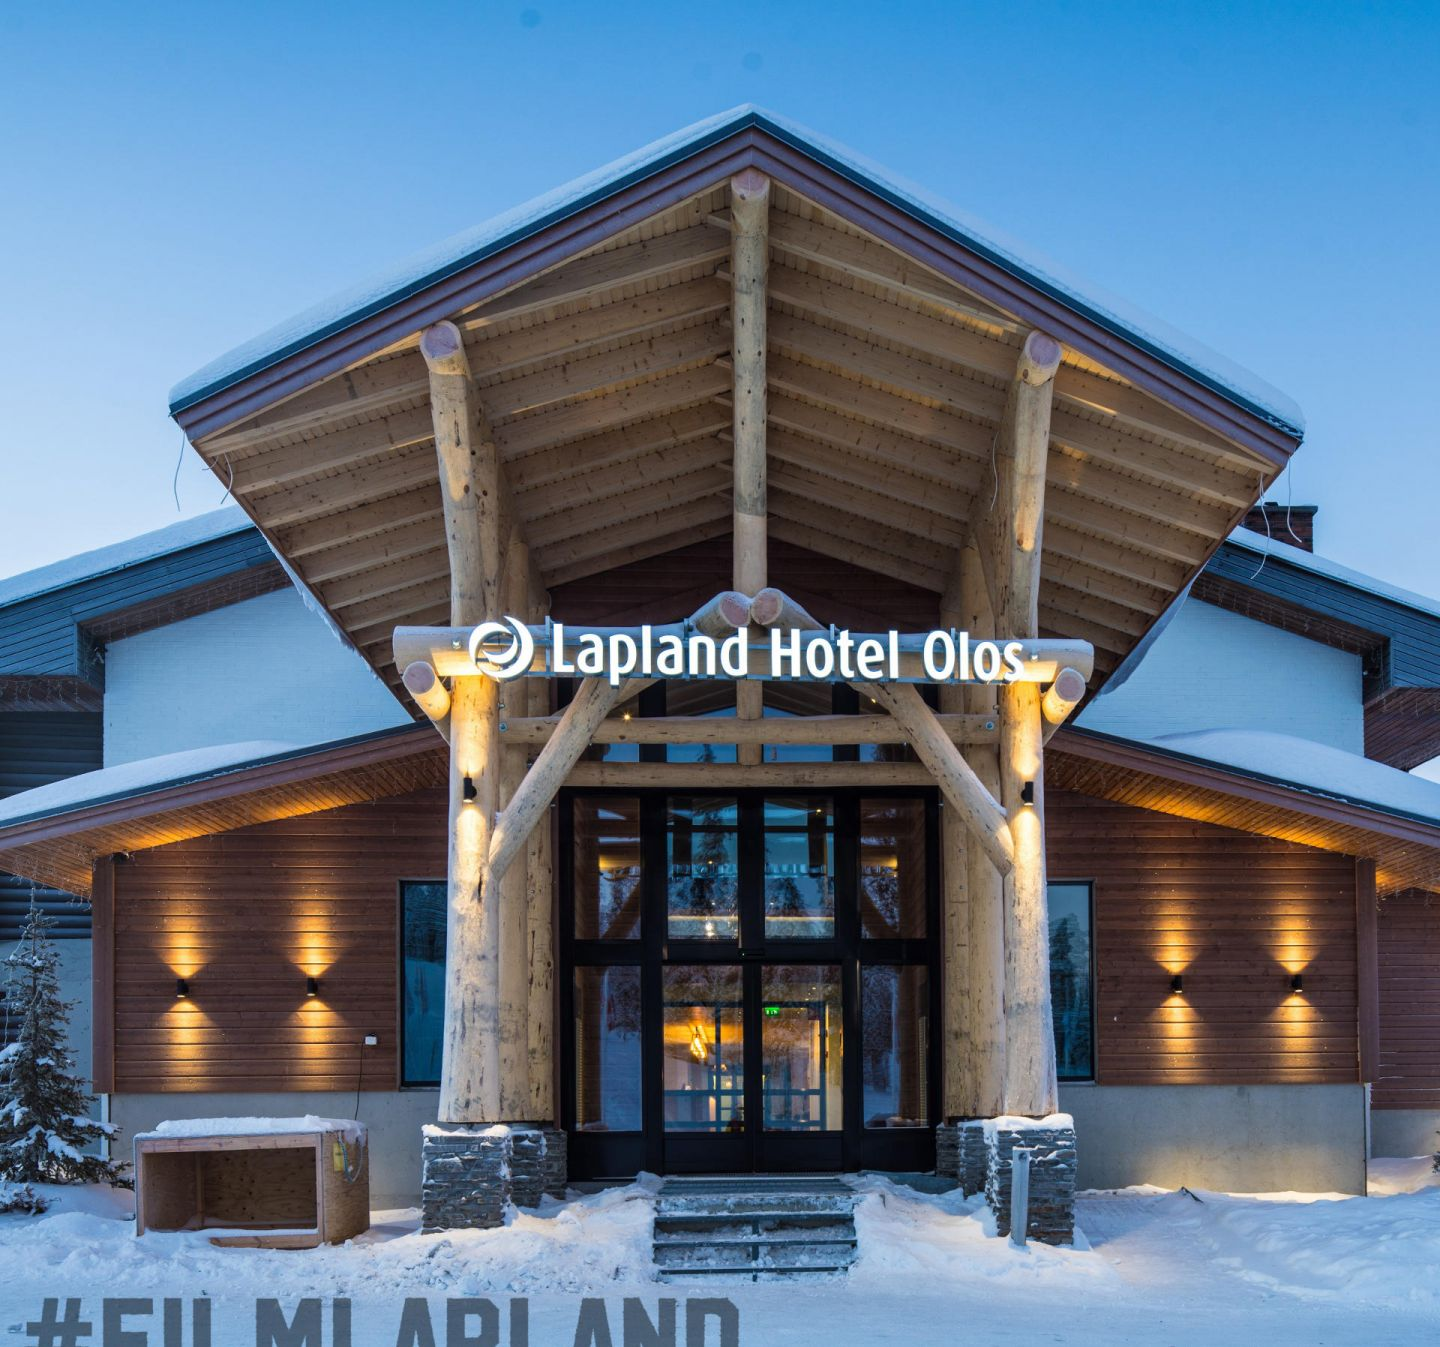 Hotel Olos in Lapland Finland